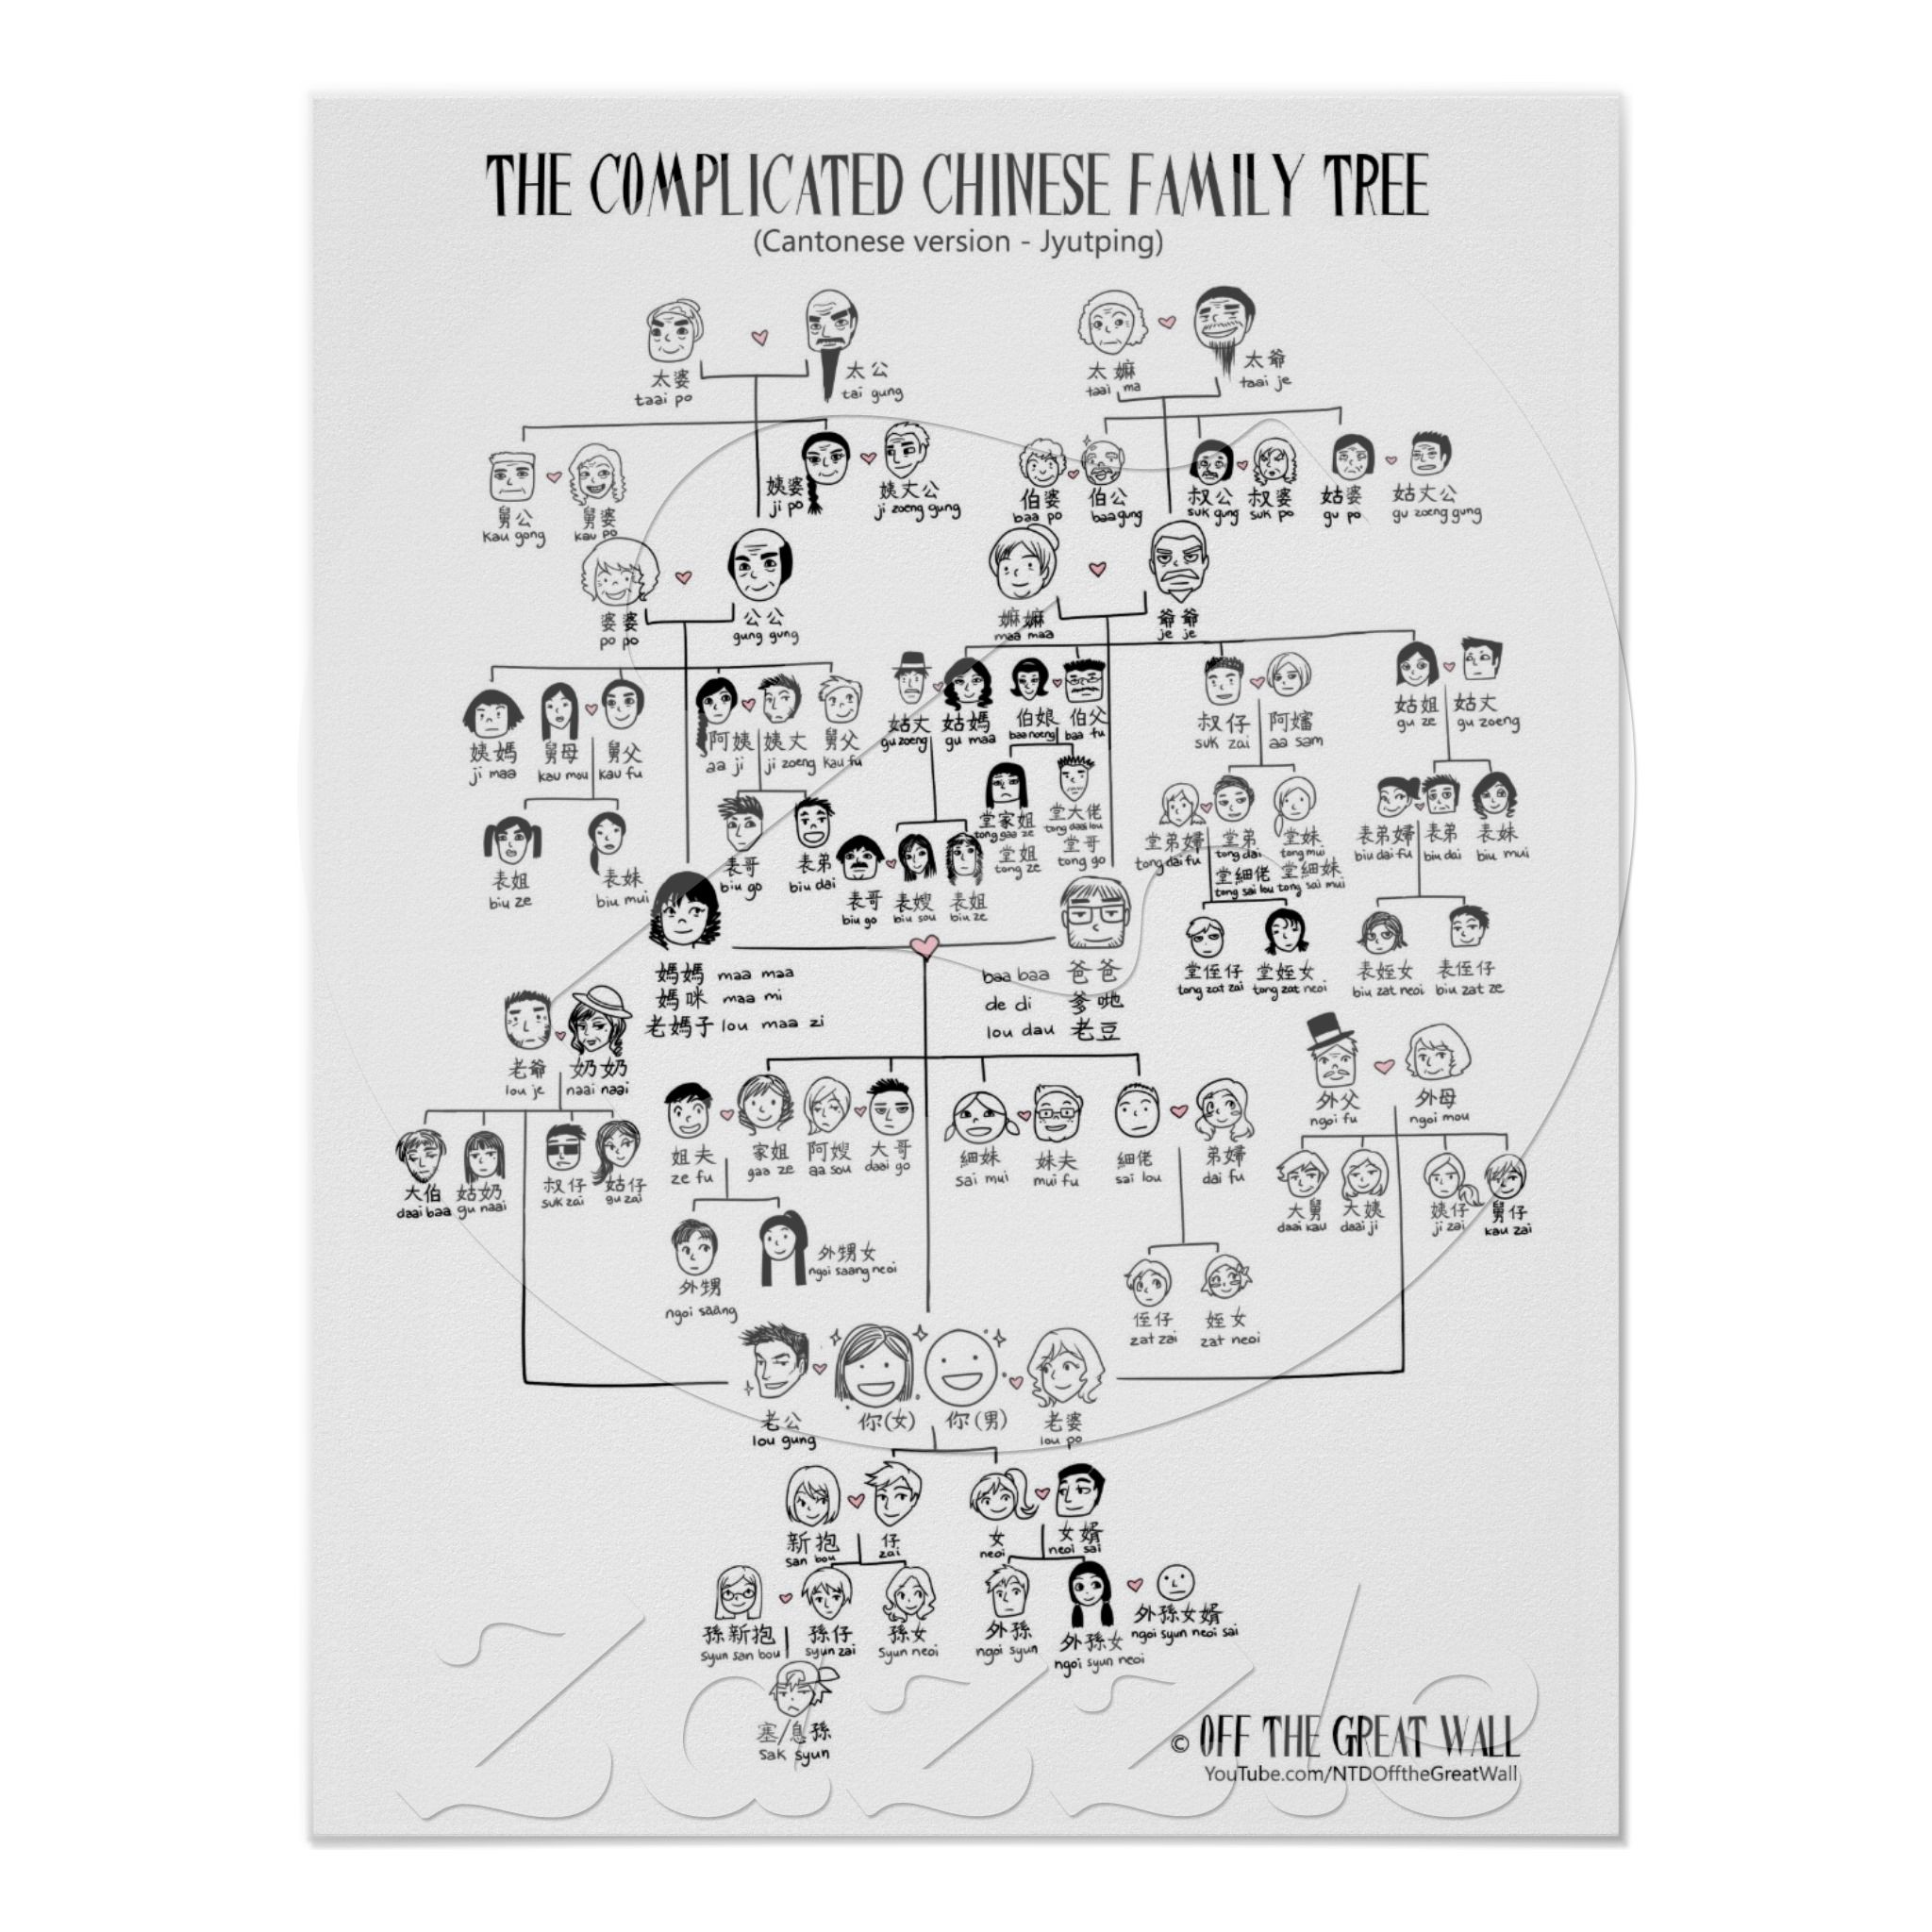 The Complicated Chinese Family Tree